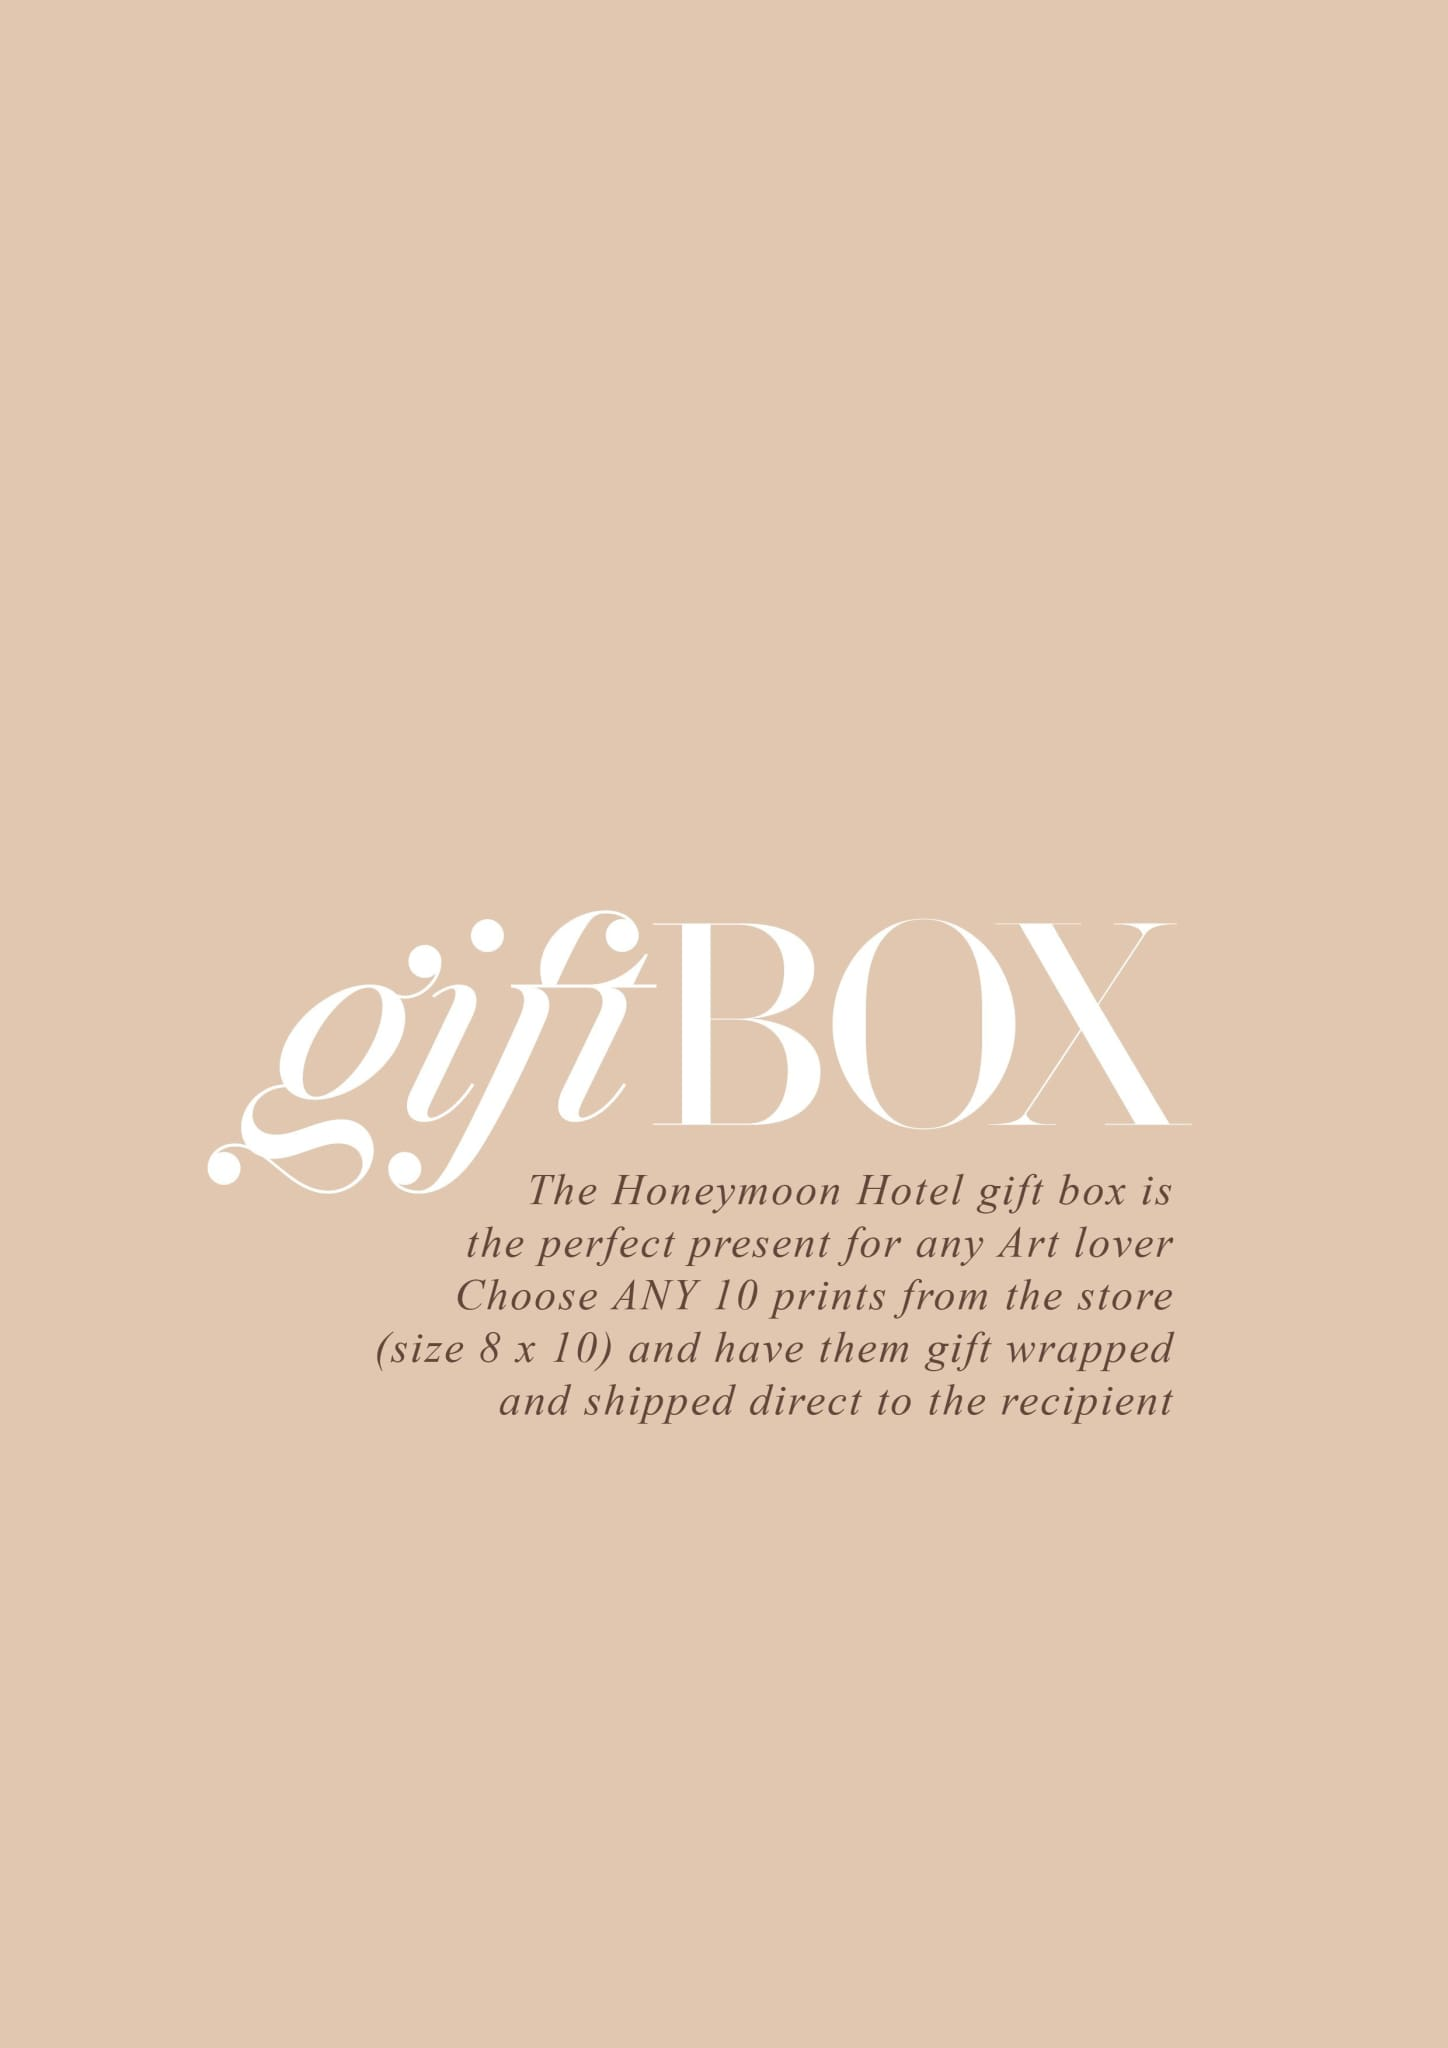 GIFT BOX - HONEYMOON HOTEL